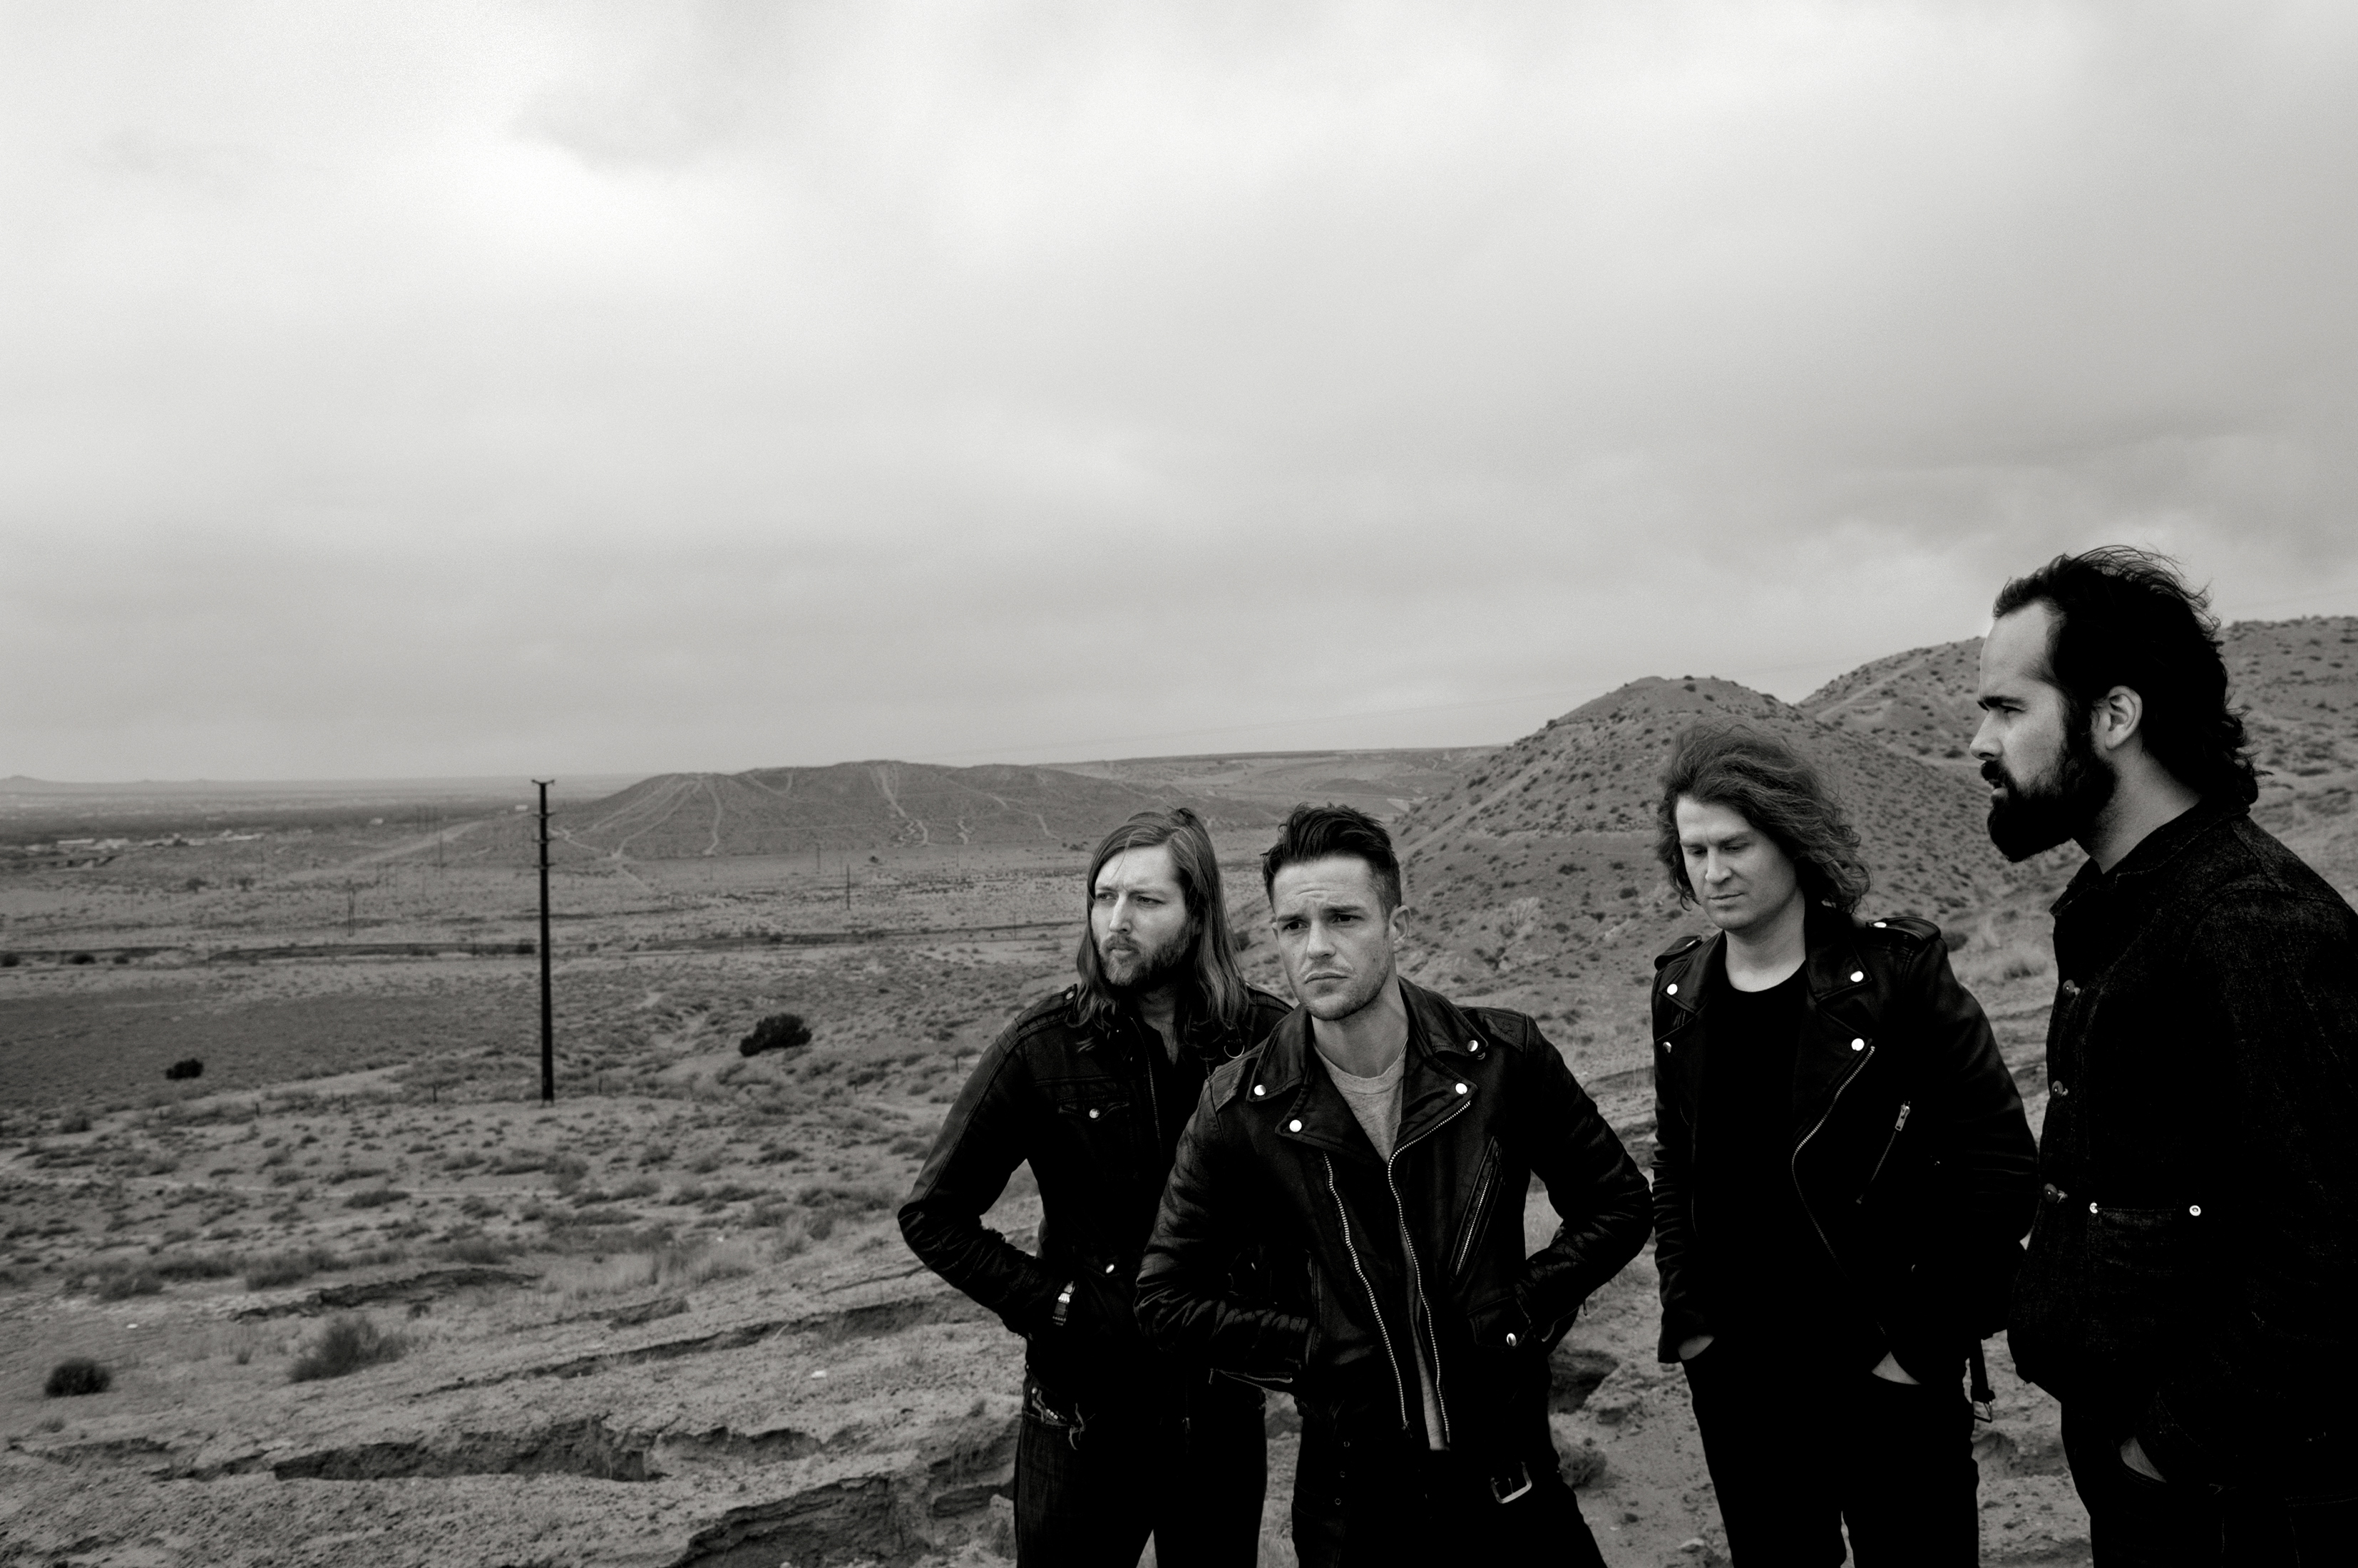 Listen to The Killers' new album 'Wonderful Wonderful'